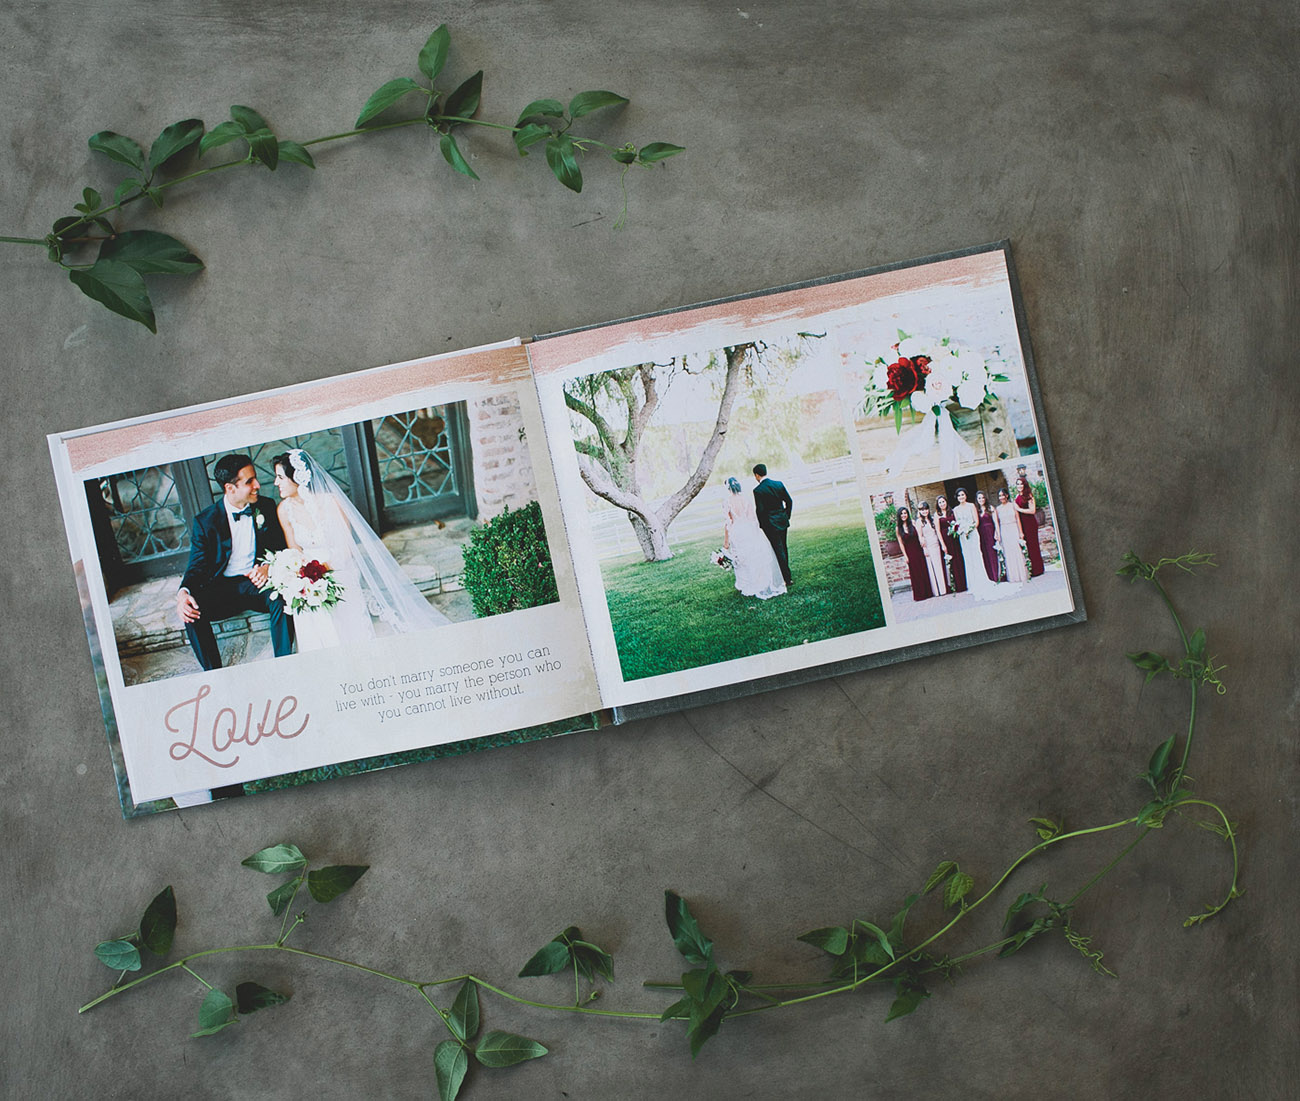 Designing Wedding Albums: Create Your Wedding Album + Cards With Mixbook